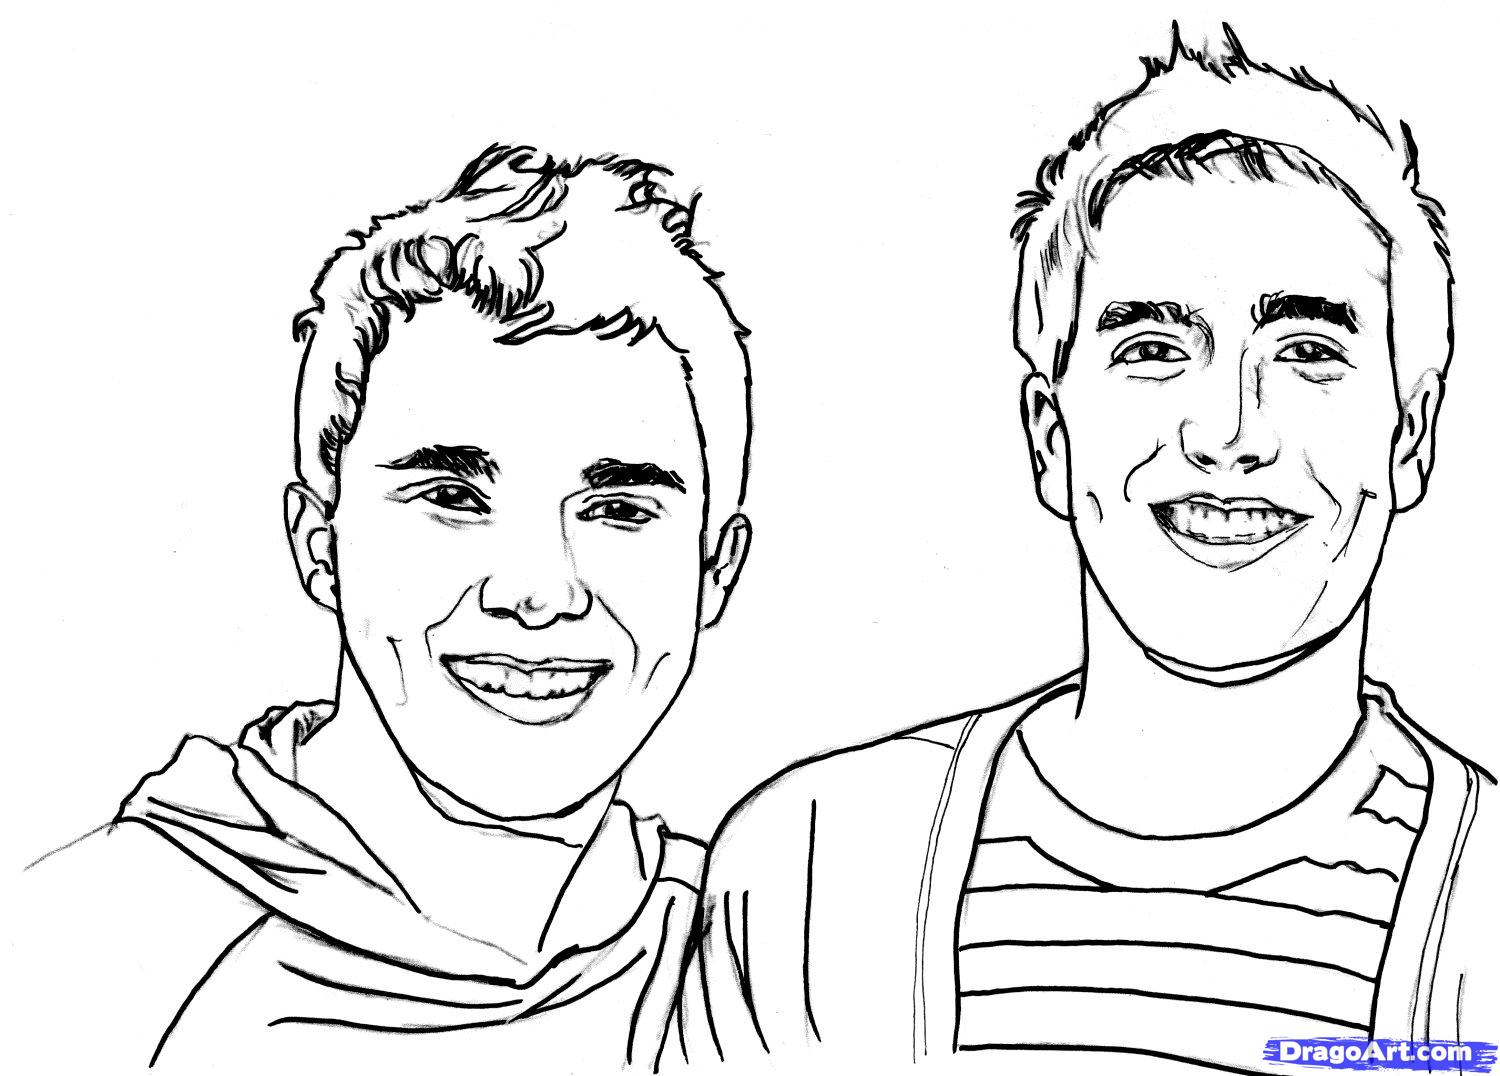 big time rush coloring pages - photo#2